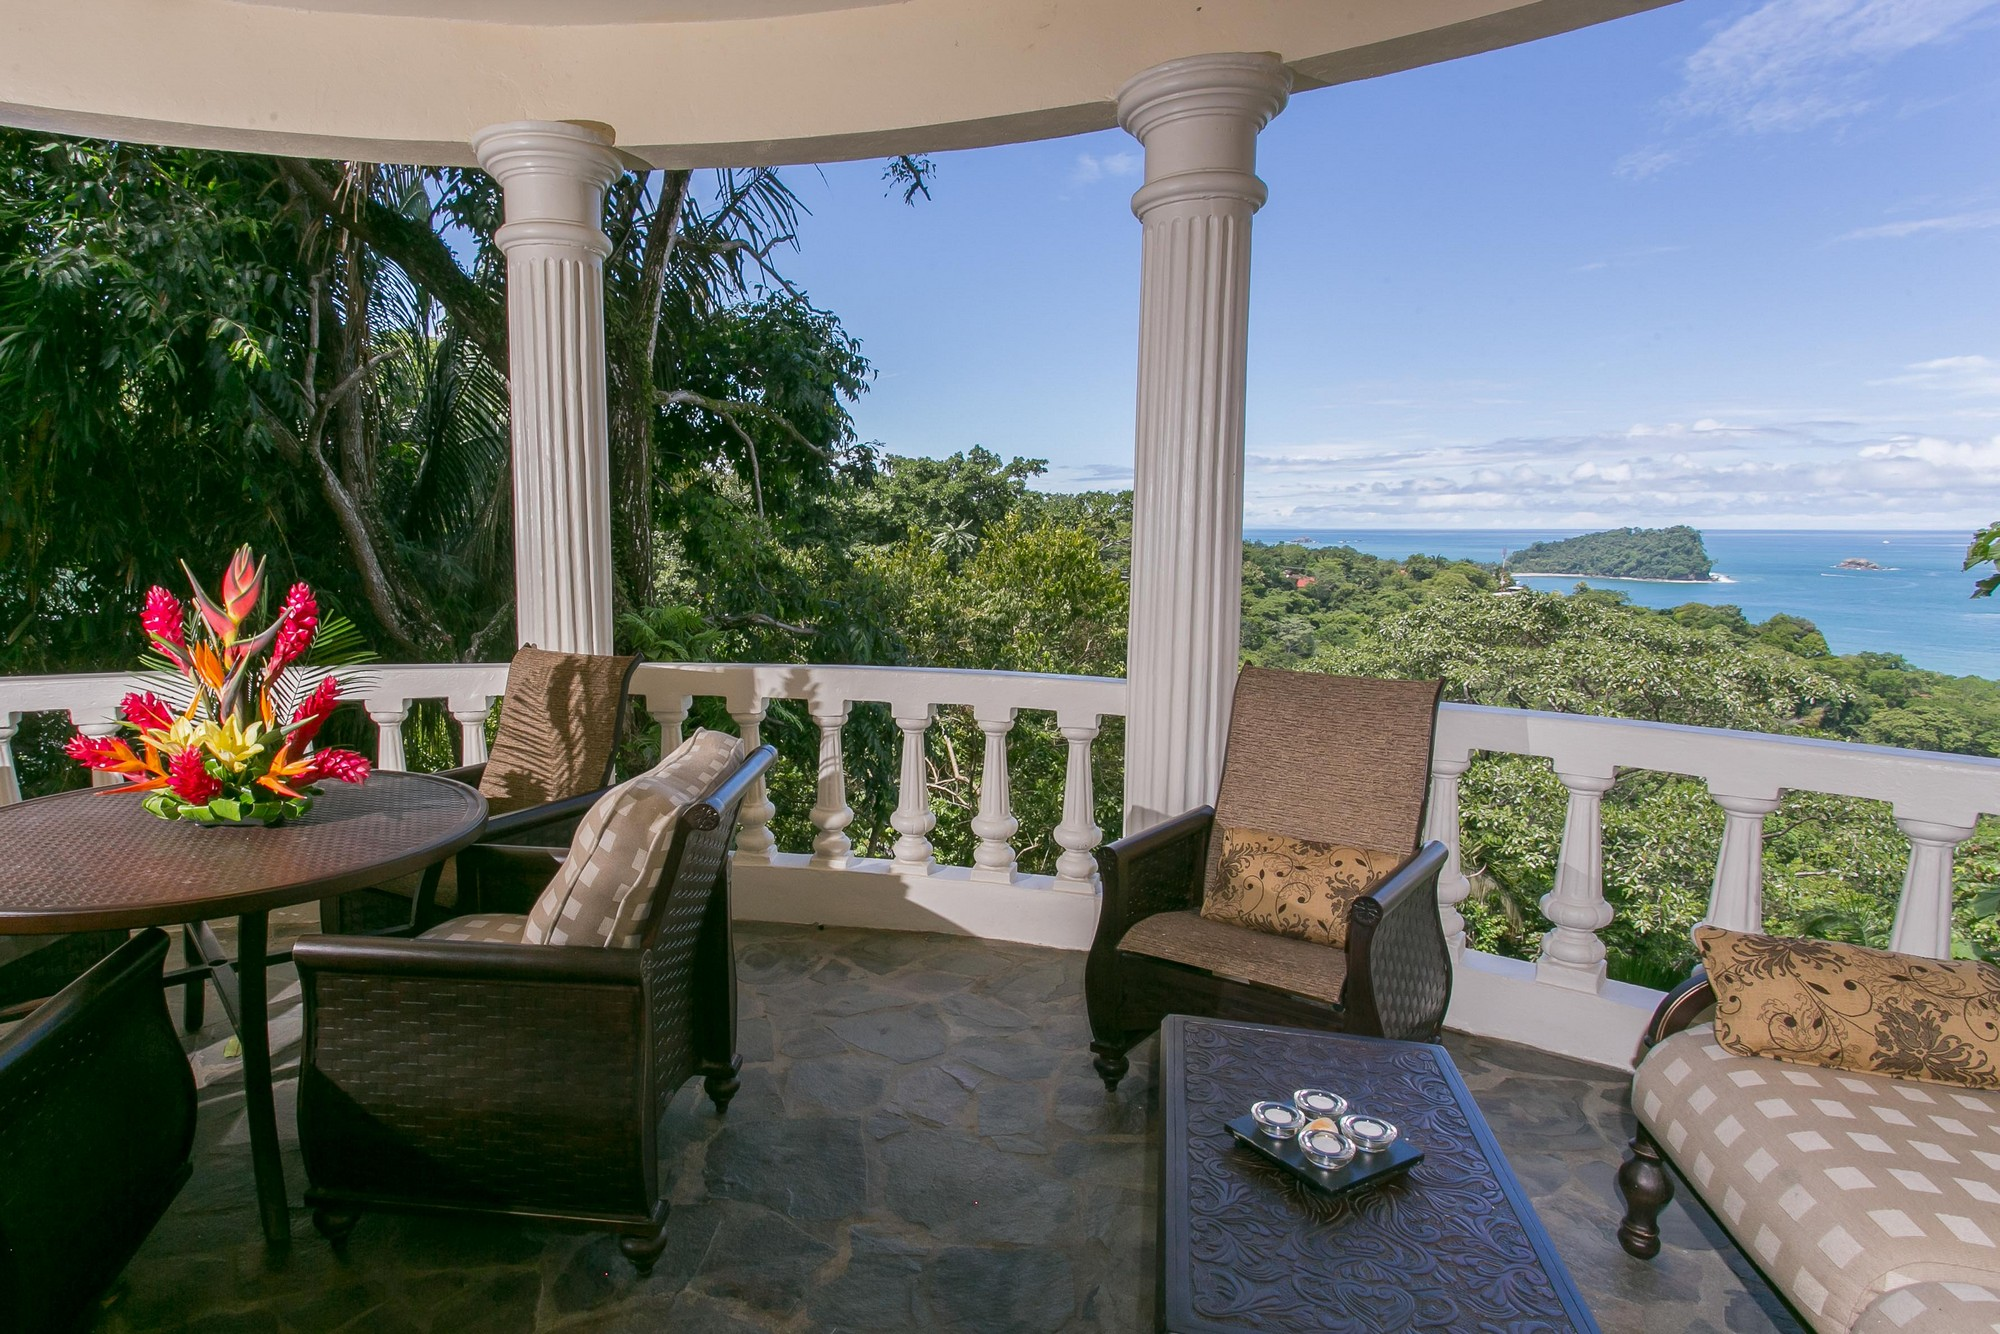 Vacation rentals near manuel antonio national park for Balcony sunbathing